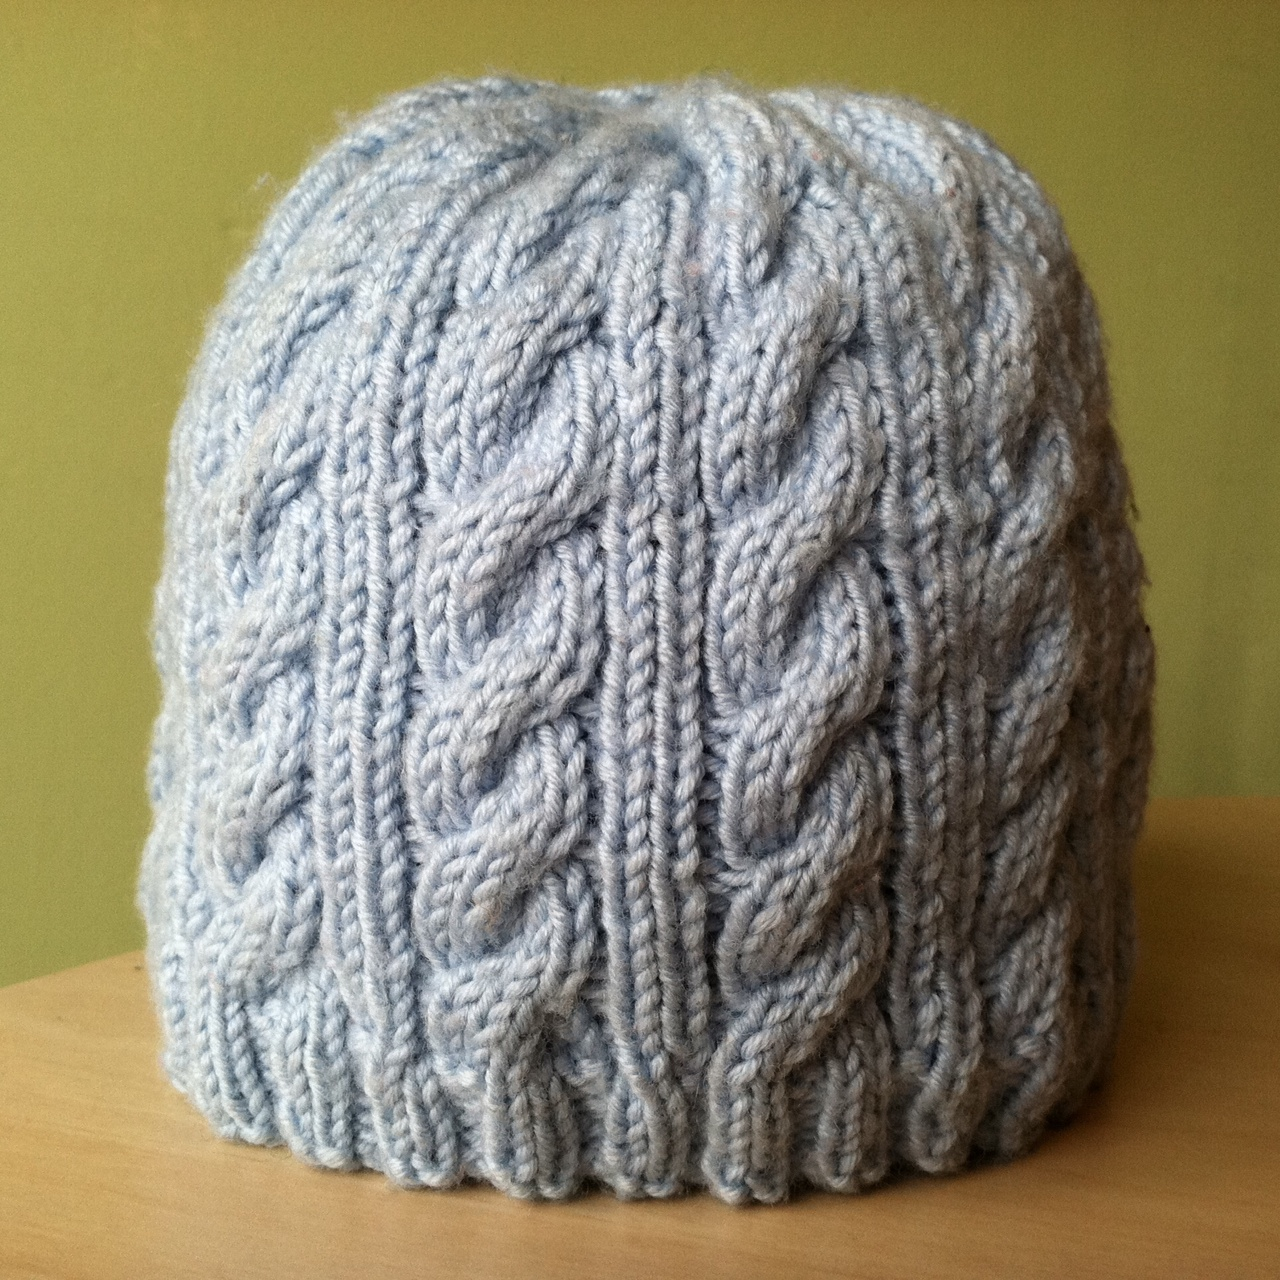 Easy Hat Knitting Patterns : The Yarn Garden Blog: Upcoming Class: Easy Baby Cable Knit Hat